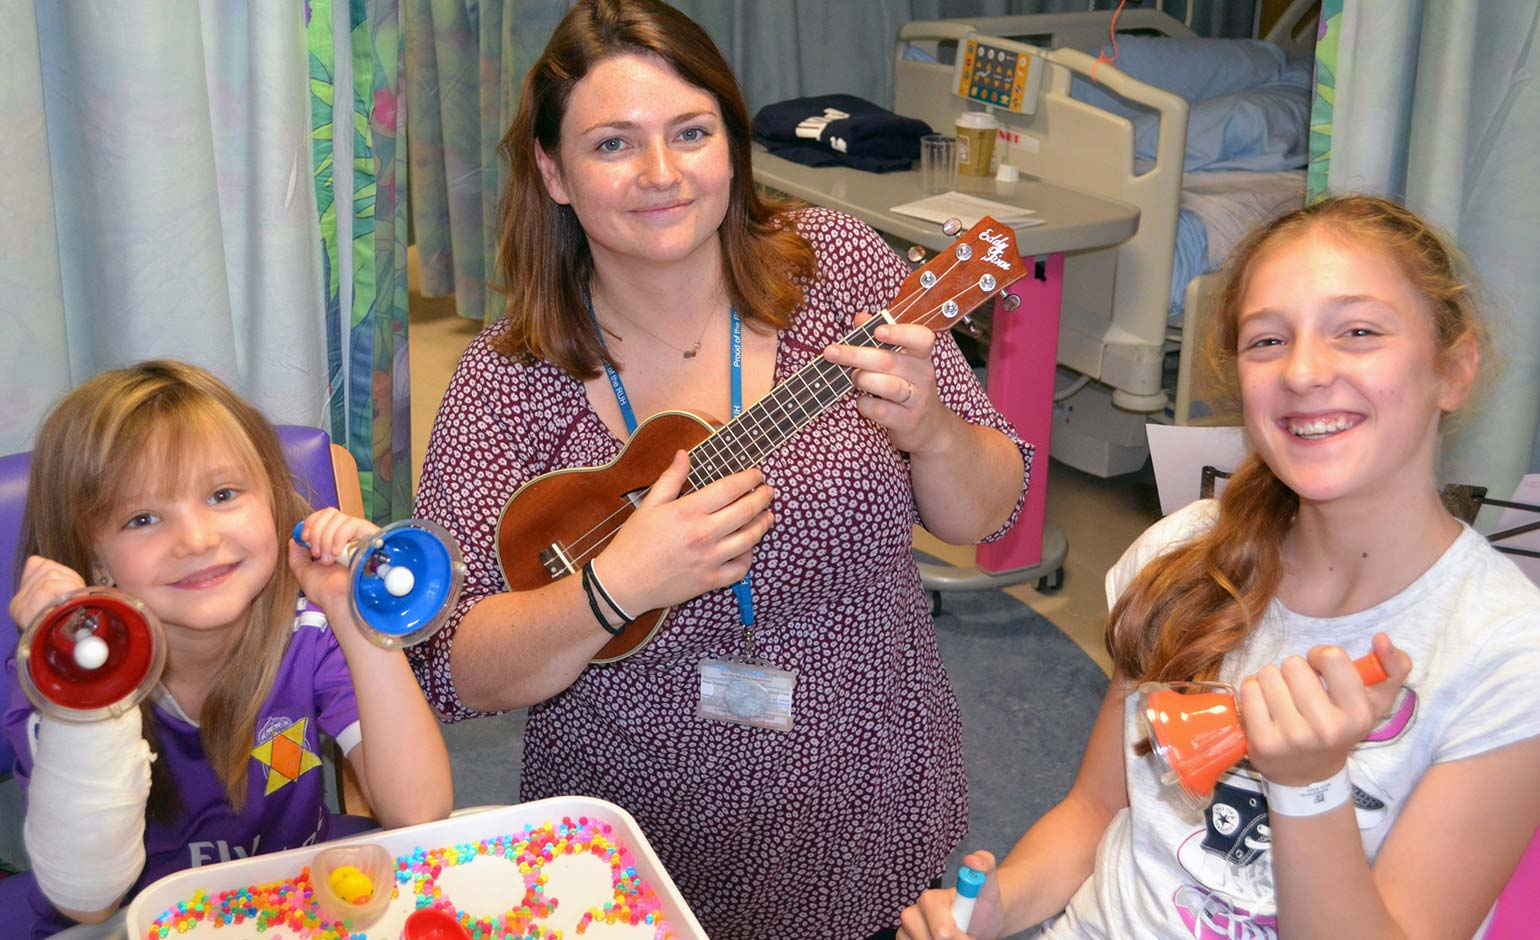 Fun on Children's Ward as RUH celebrates National Play in Hospital Week